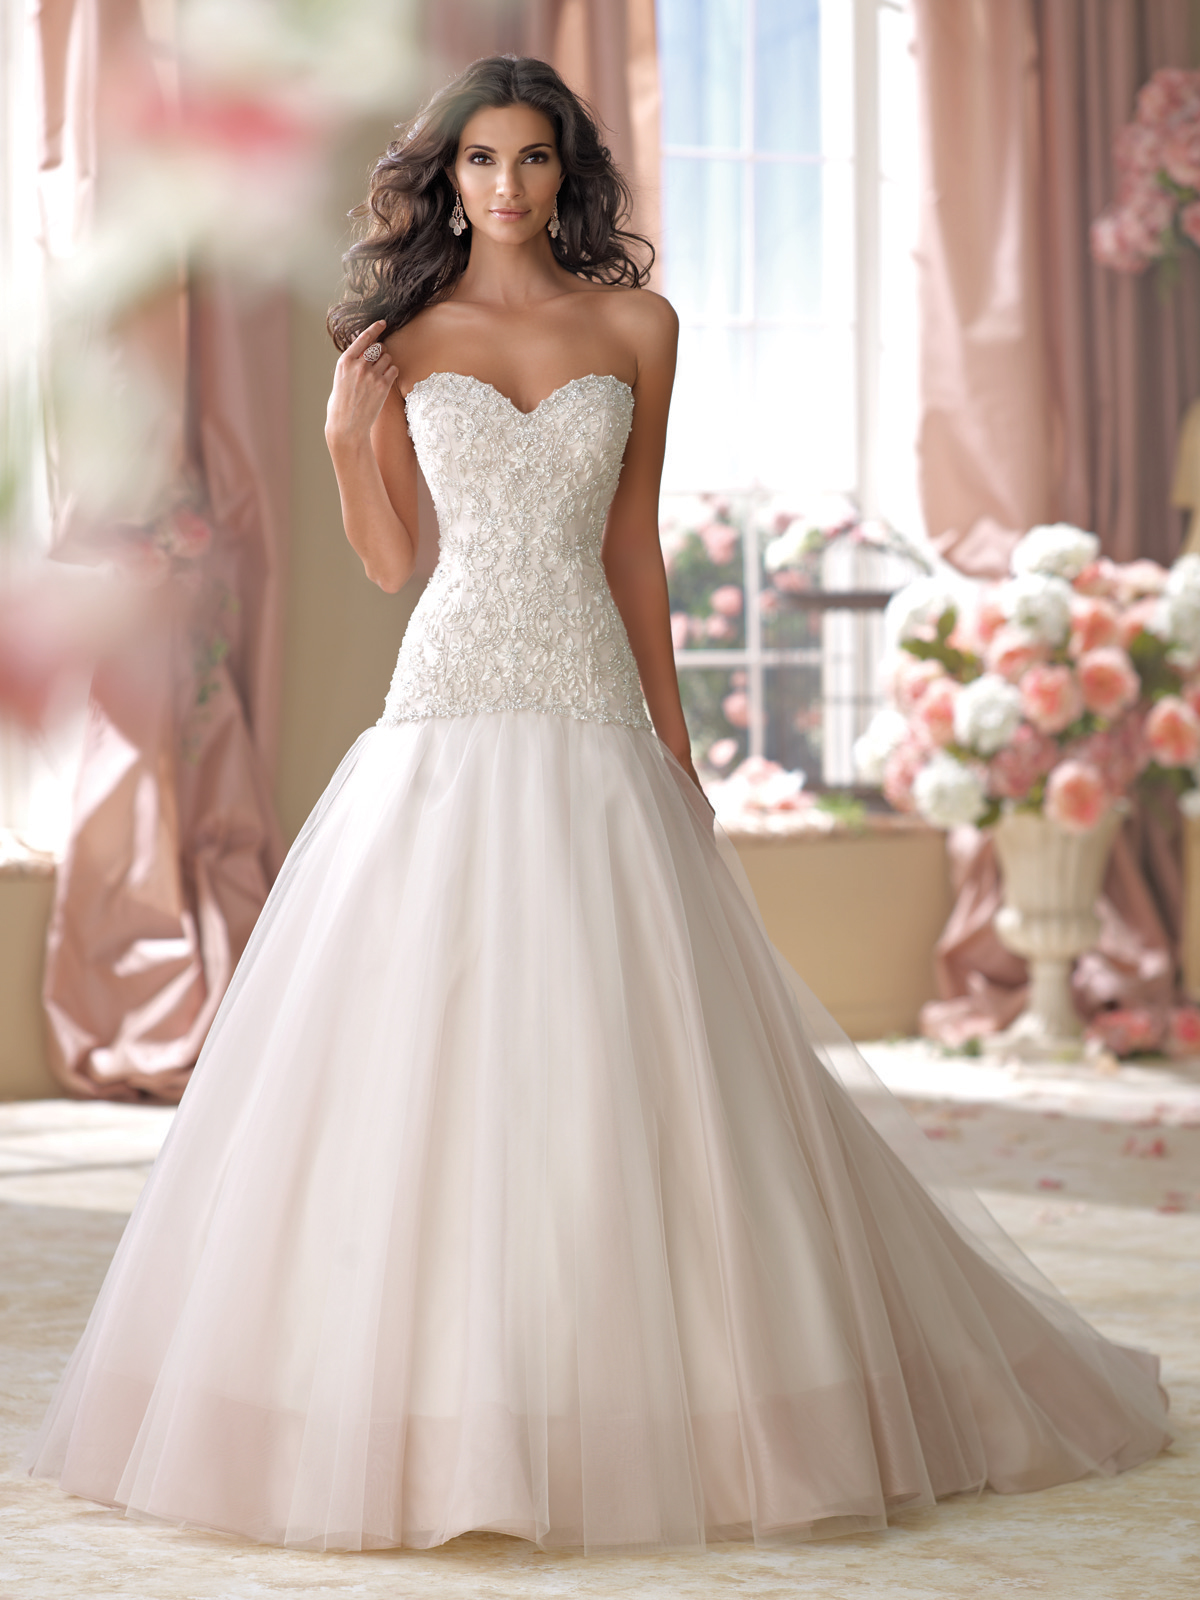 David Tutera Mon Cheri Bridal Gowns Cora #114270